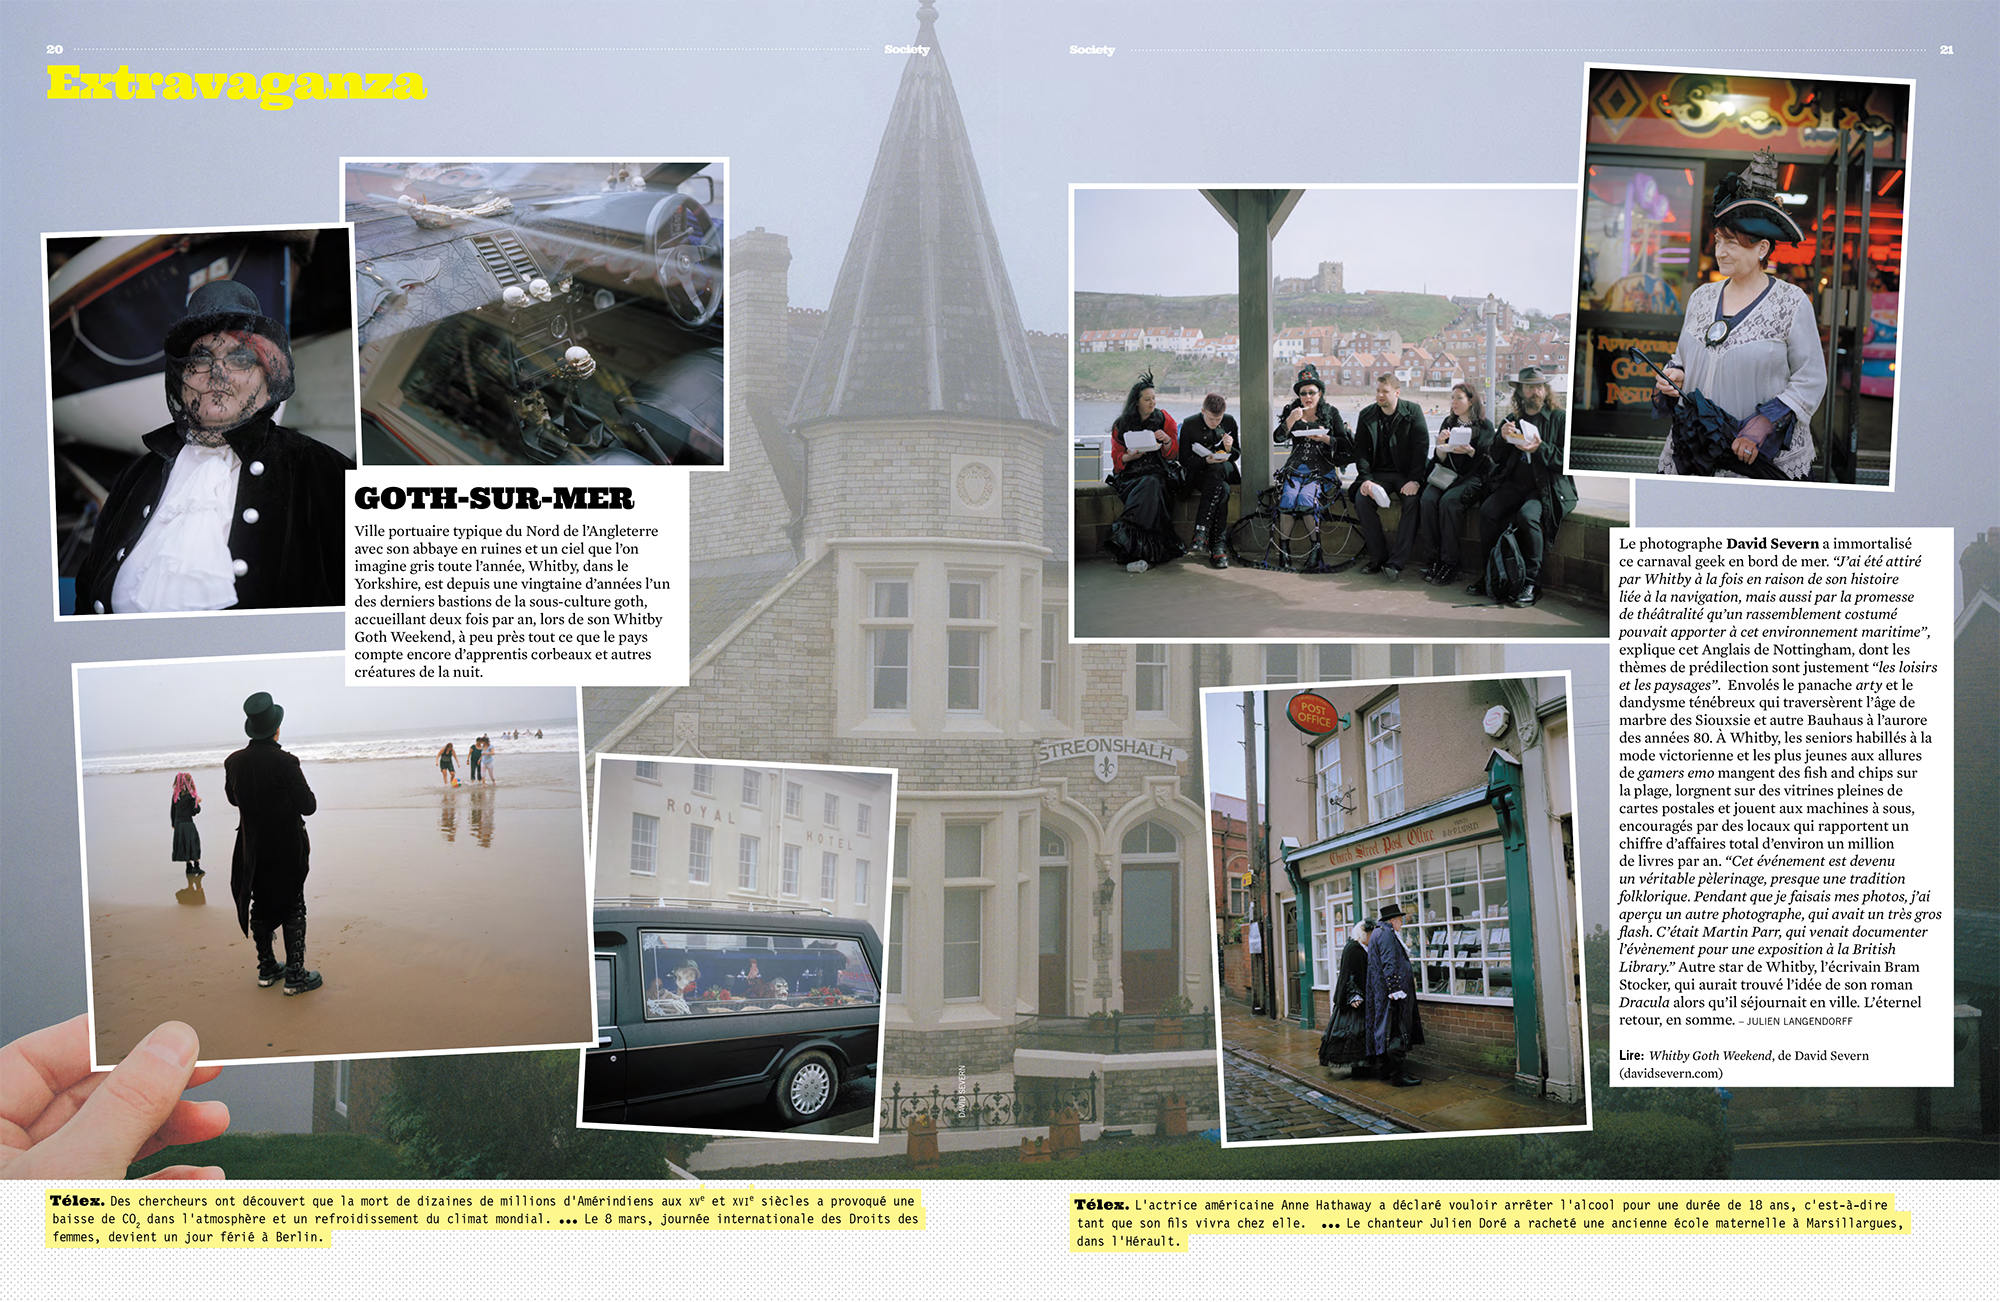 Whitby Goth Weekend featured in Society magazine